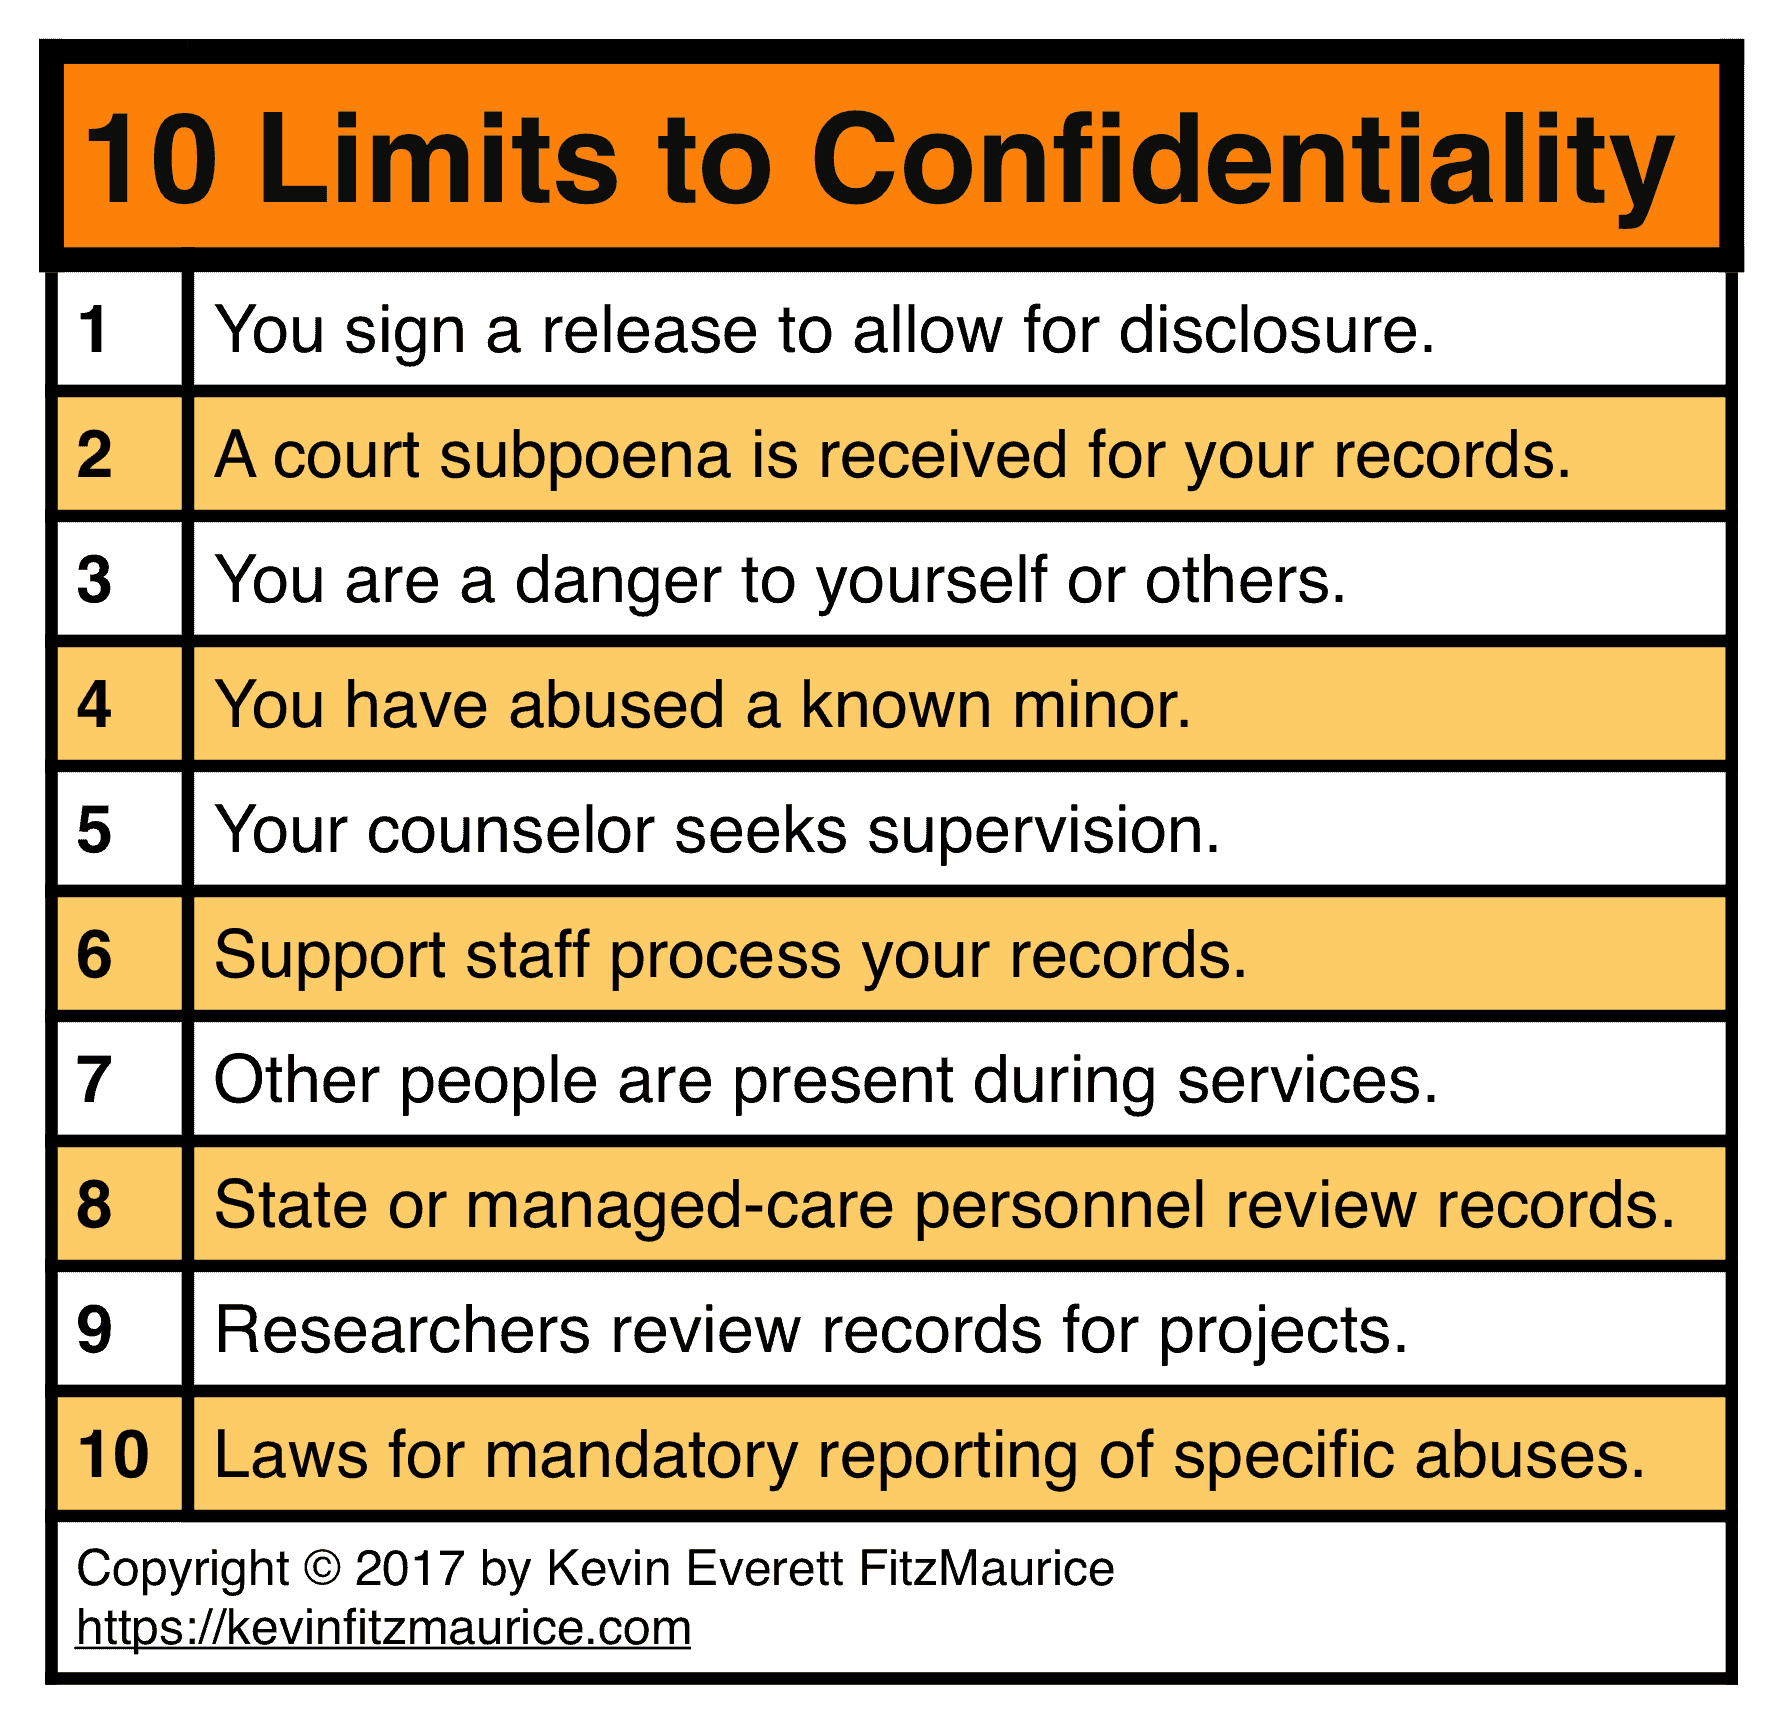 10 Limits to Confidentiality in Counseling